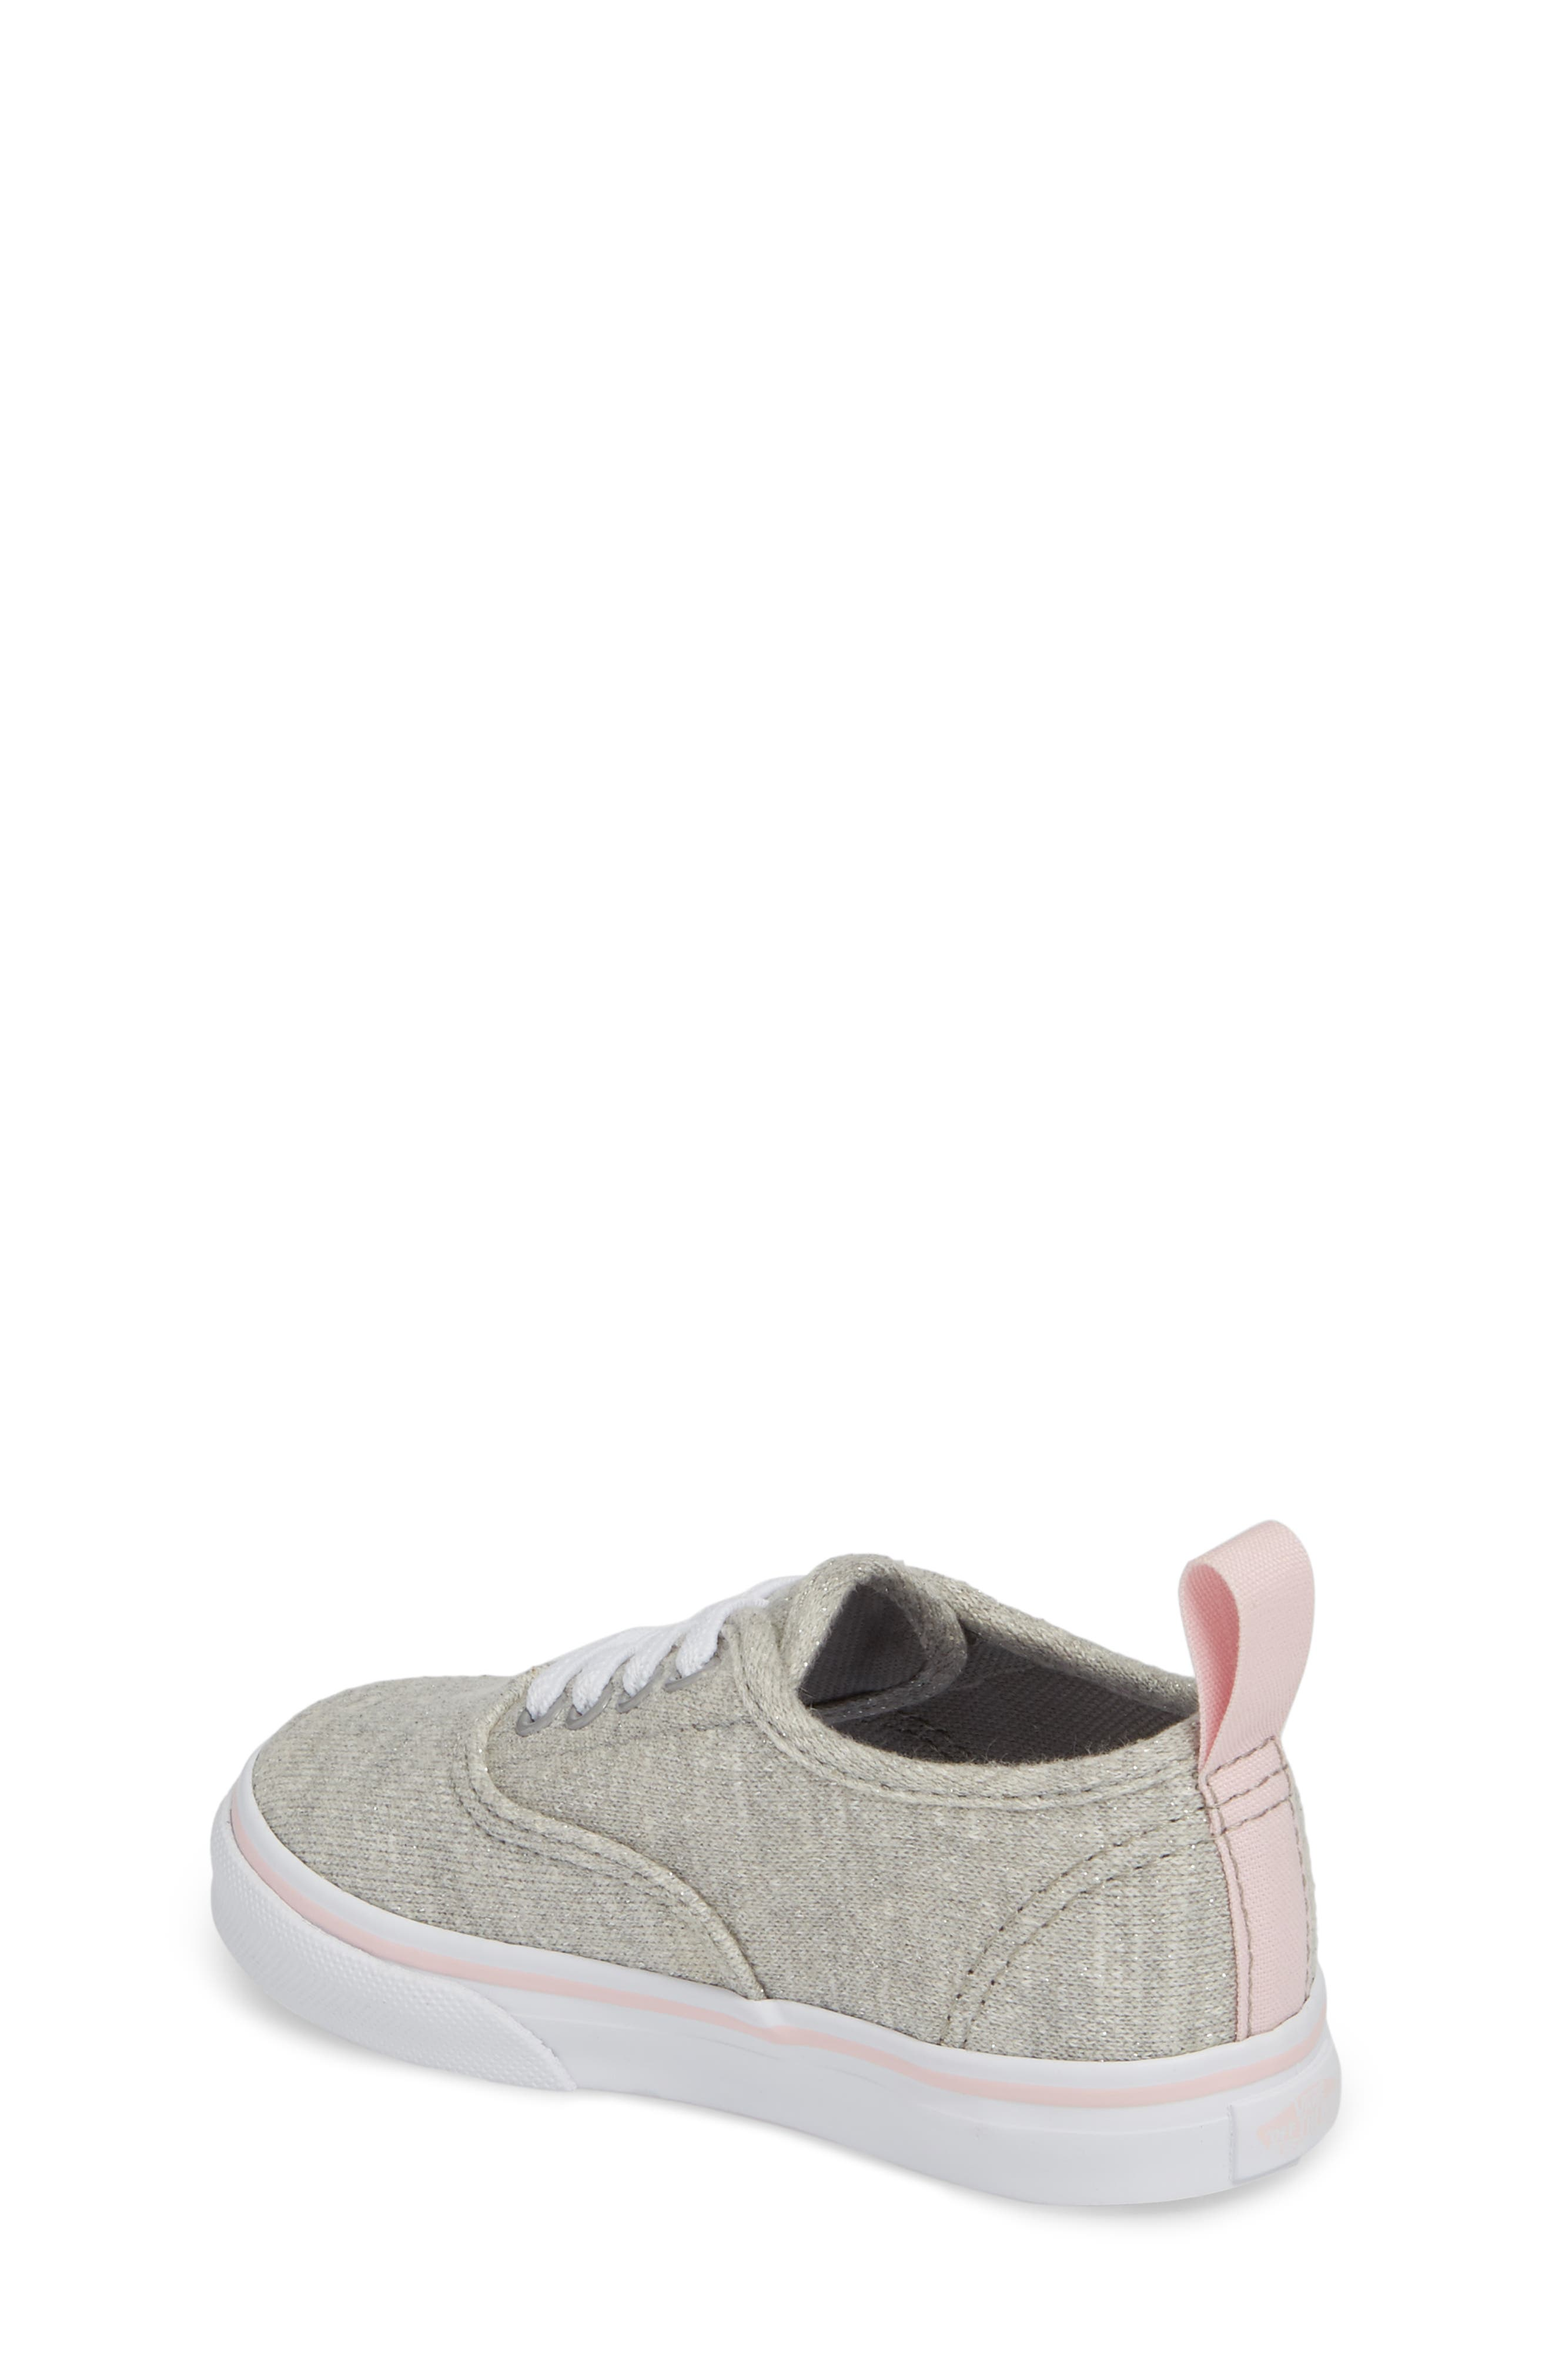 Authentic Glitter Sneaker,                             Alternate thumbnail 2, color,                             Gray/ Pink Shimmer Jersey